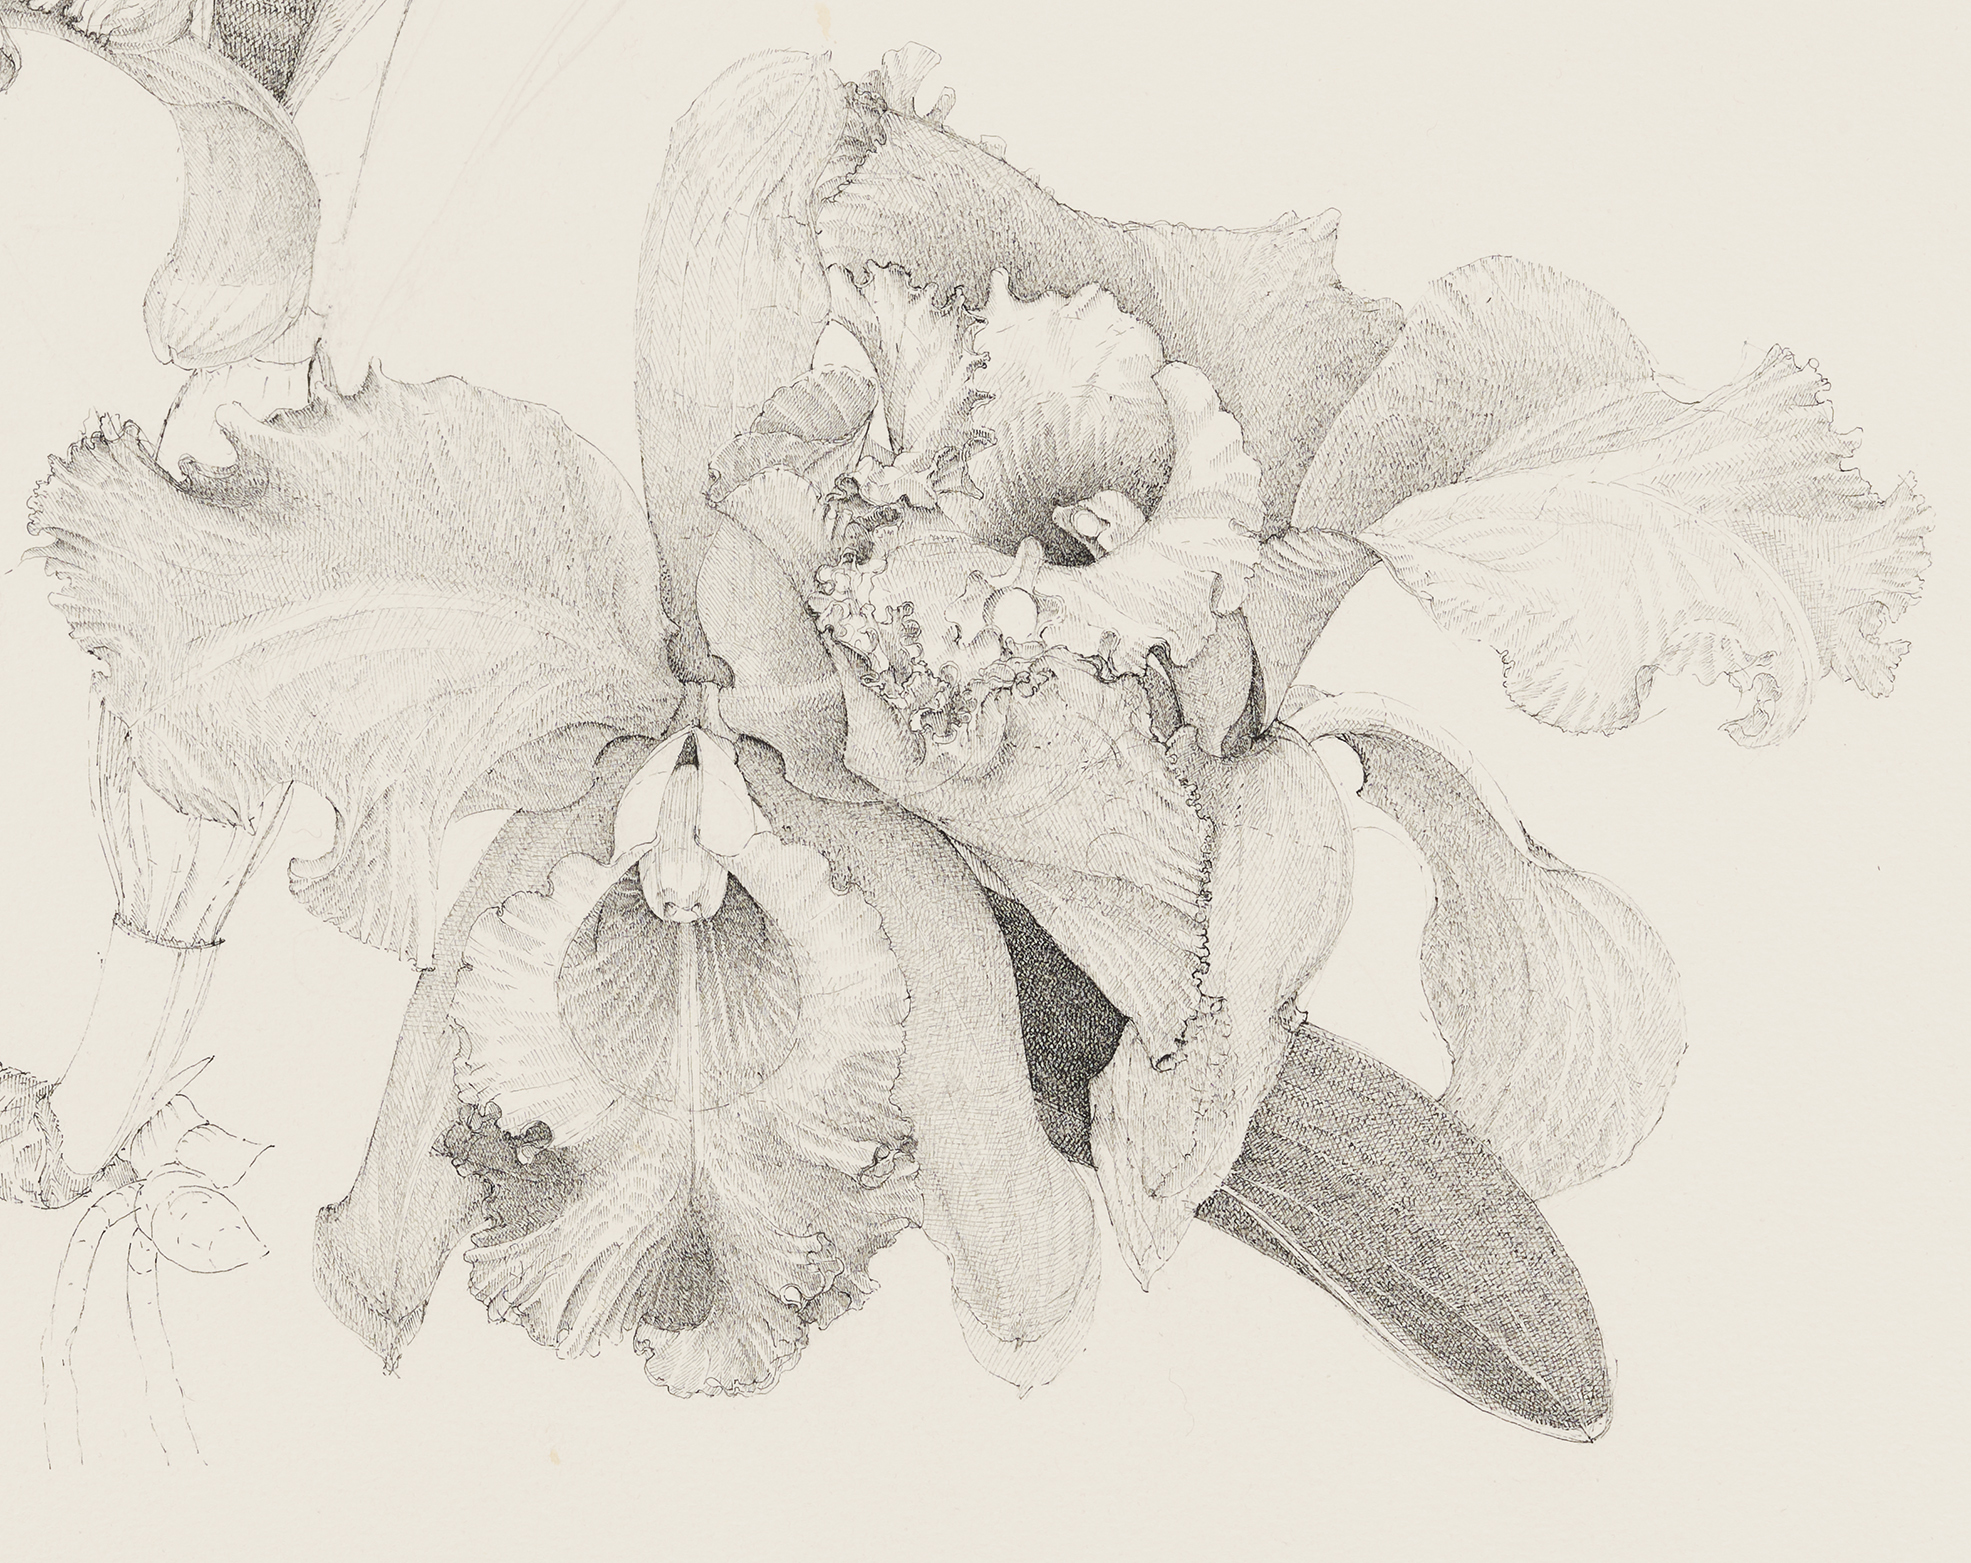 Charmian Johnson, C. Empress Bells X C. Princess Bells (detail), unknown date, ink on paper, 26 x 34 in. (65 x 85 cm) by